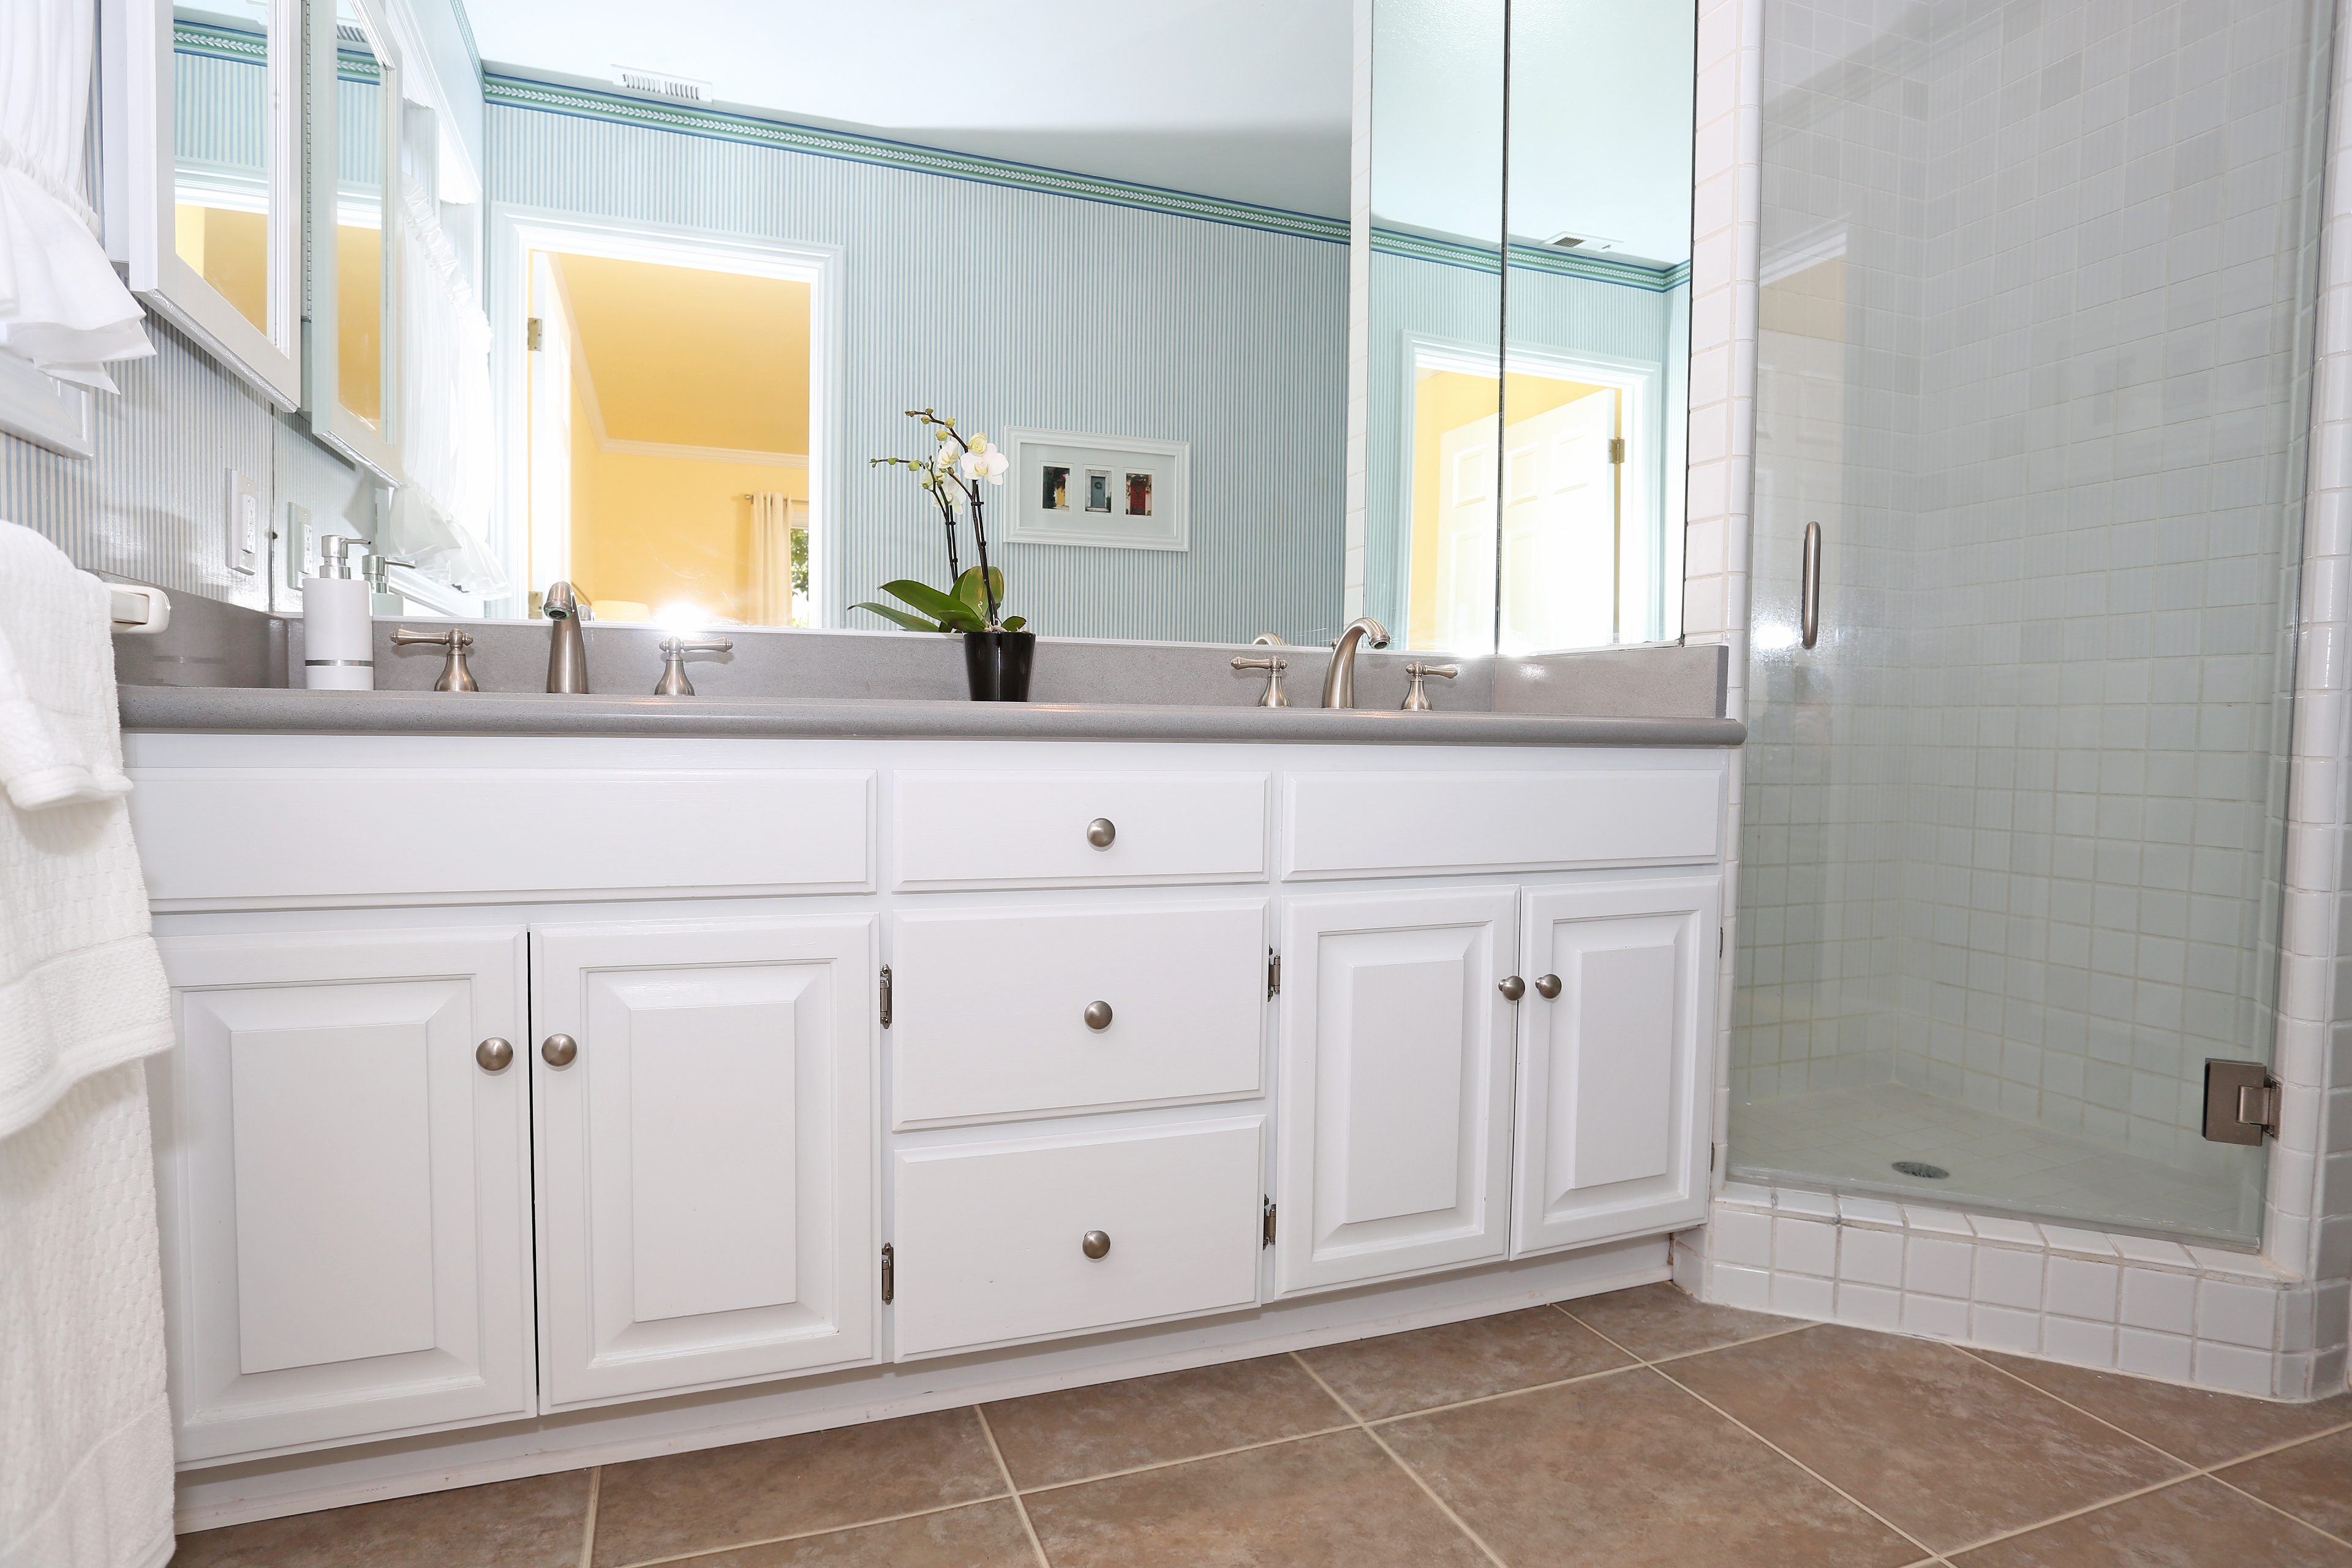 3739 Lincolnwood Dr - Original Master Bath Downstairs